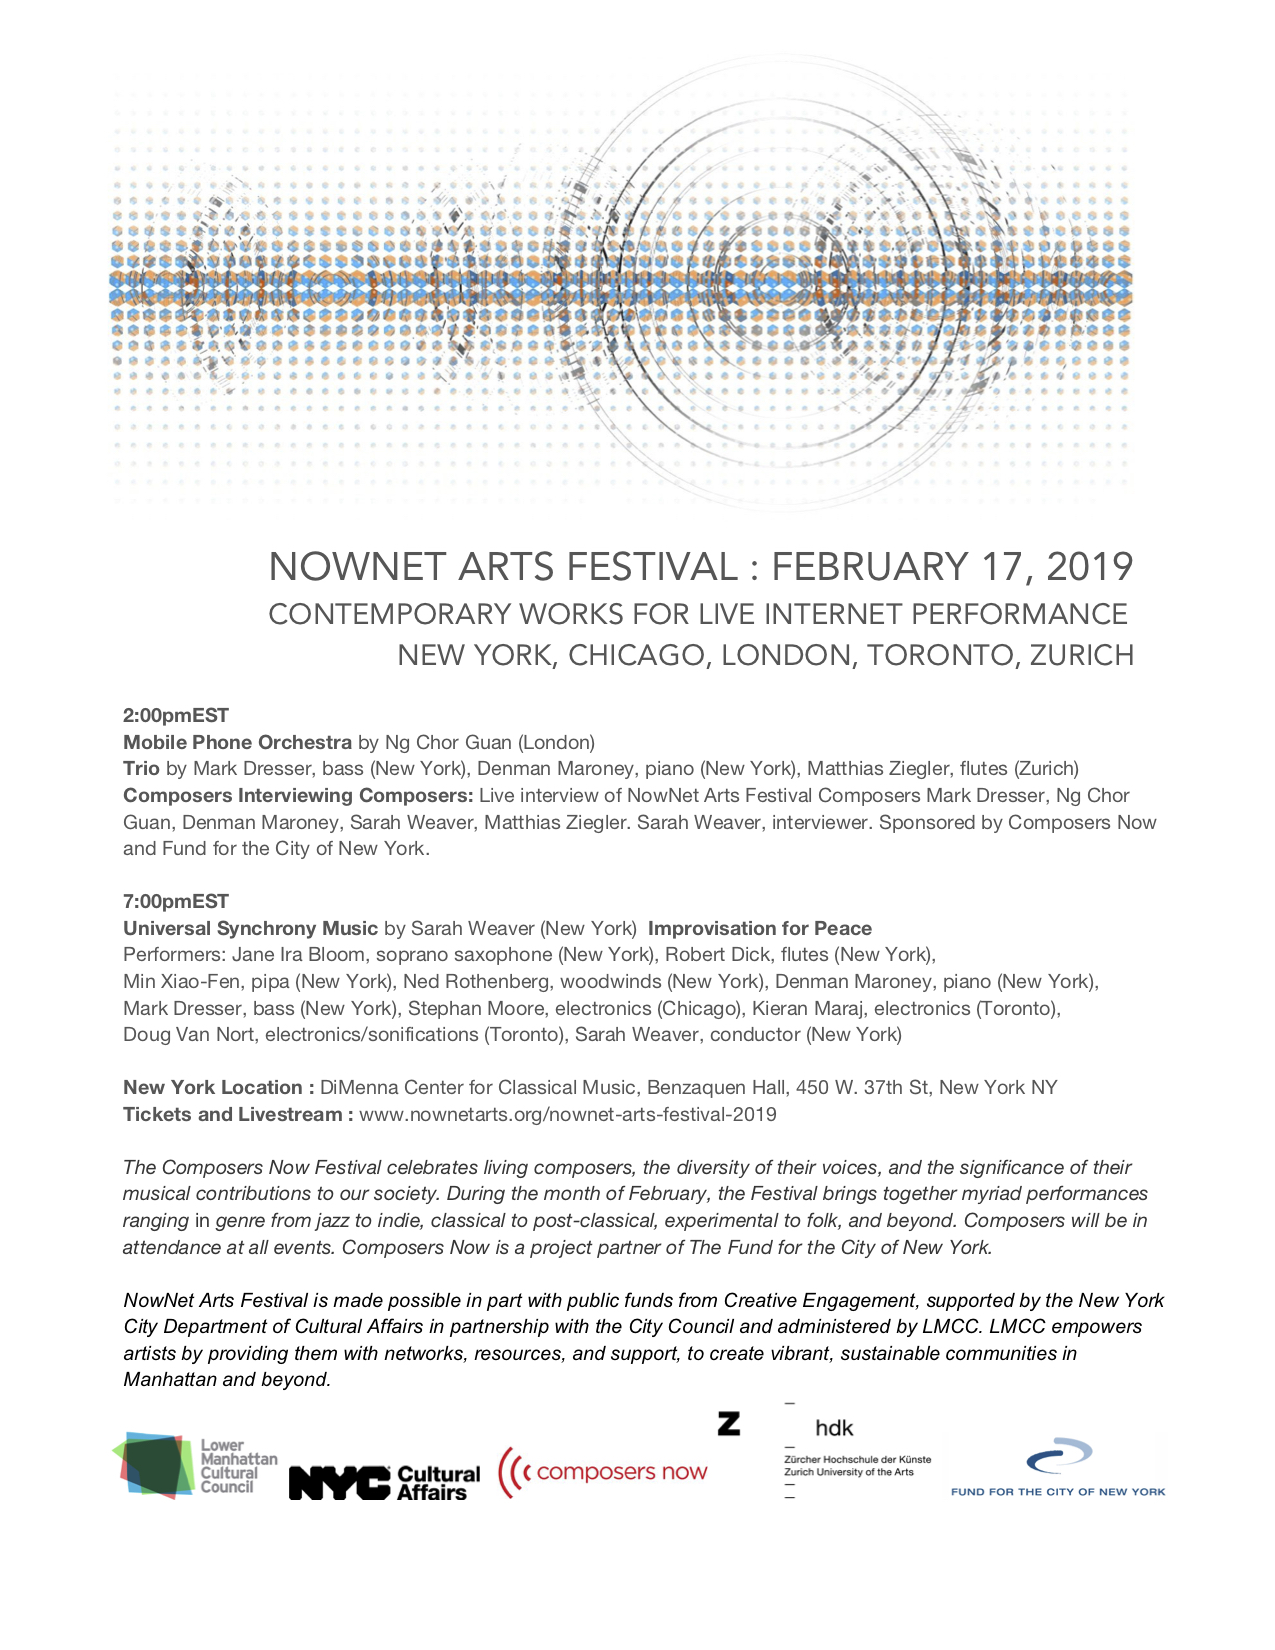 NOWNET ARTS FESTIVAL - February 17, 2019Contemporary works for live internet performanceNew York, Chicago, London, Toronto, ZurichNew York Location: The DiMenna Center for Classical Music, Benzaquen Hall450 W. 37th St, New York NY 10018$20 Admission/$15 Students & Seniors